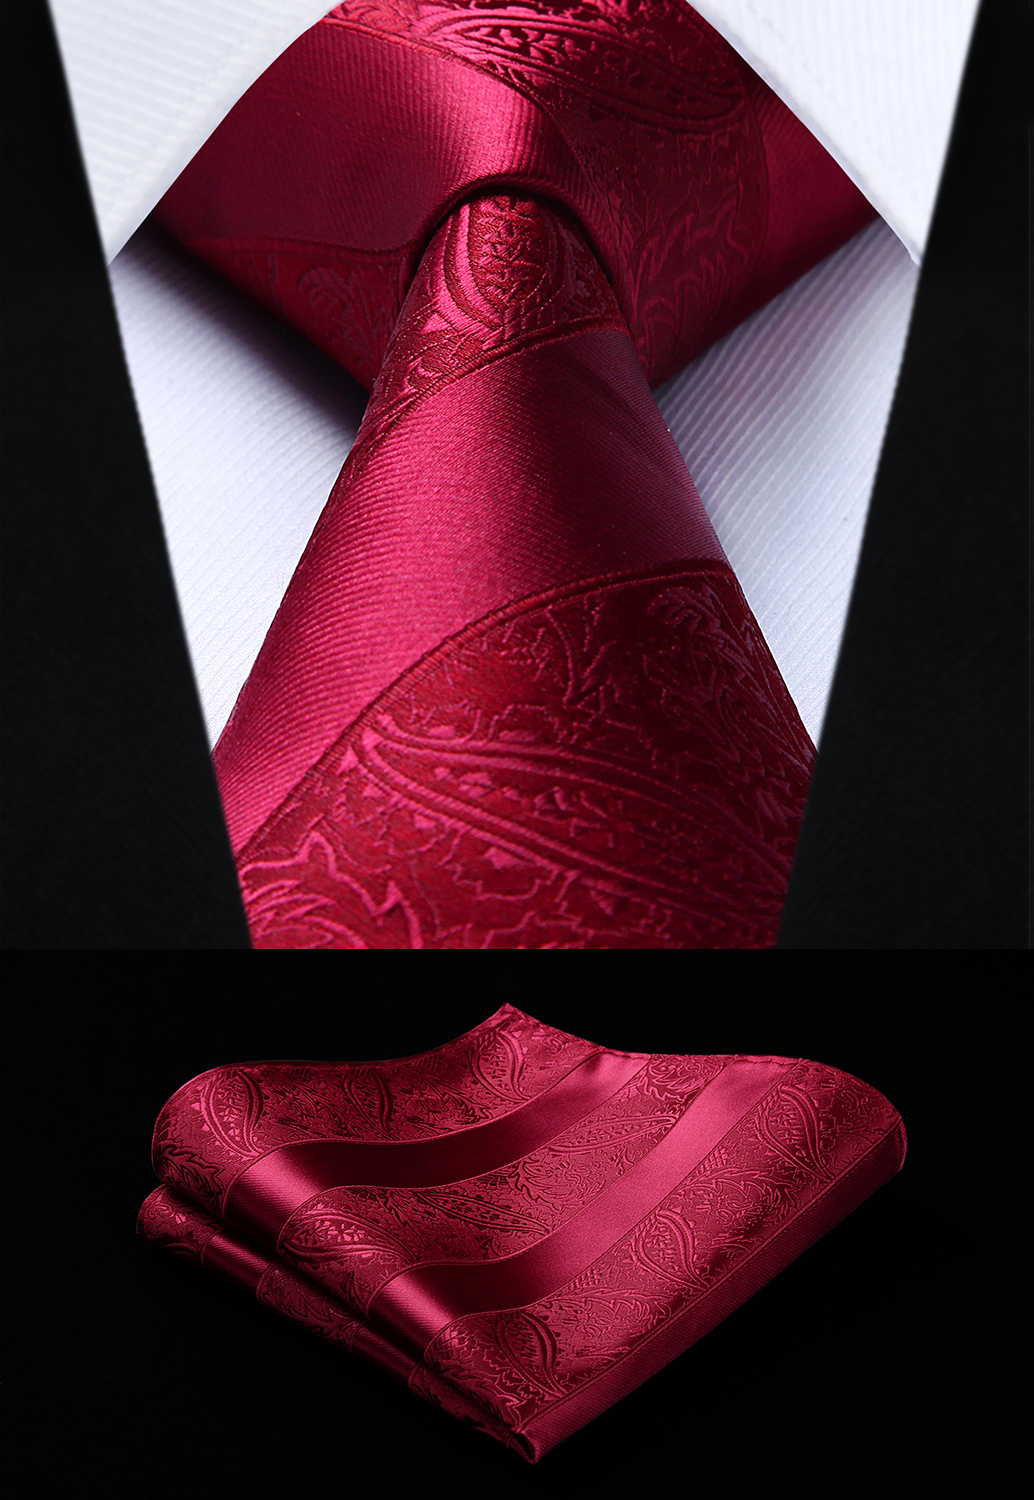 Party Wedding Classic Fashion Pocket Square Tie Woven Men Burgundy Tie Paisley Necktie Handkerchief Set#TP804U8S